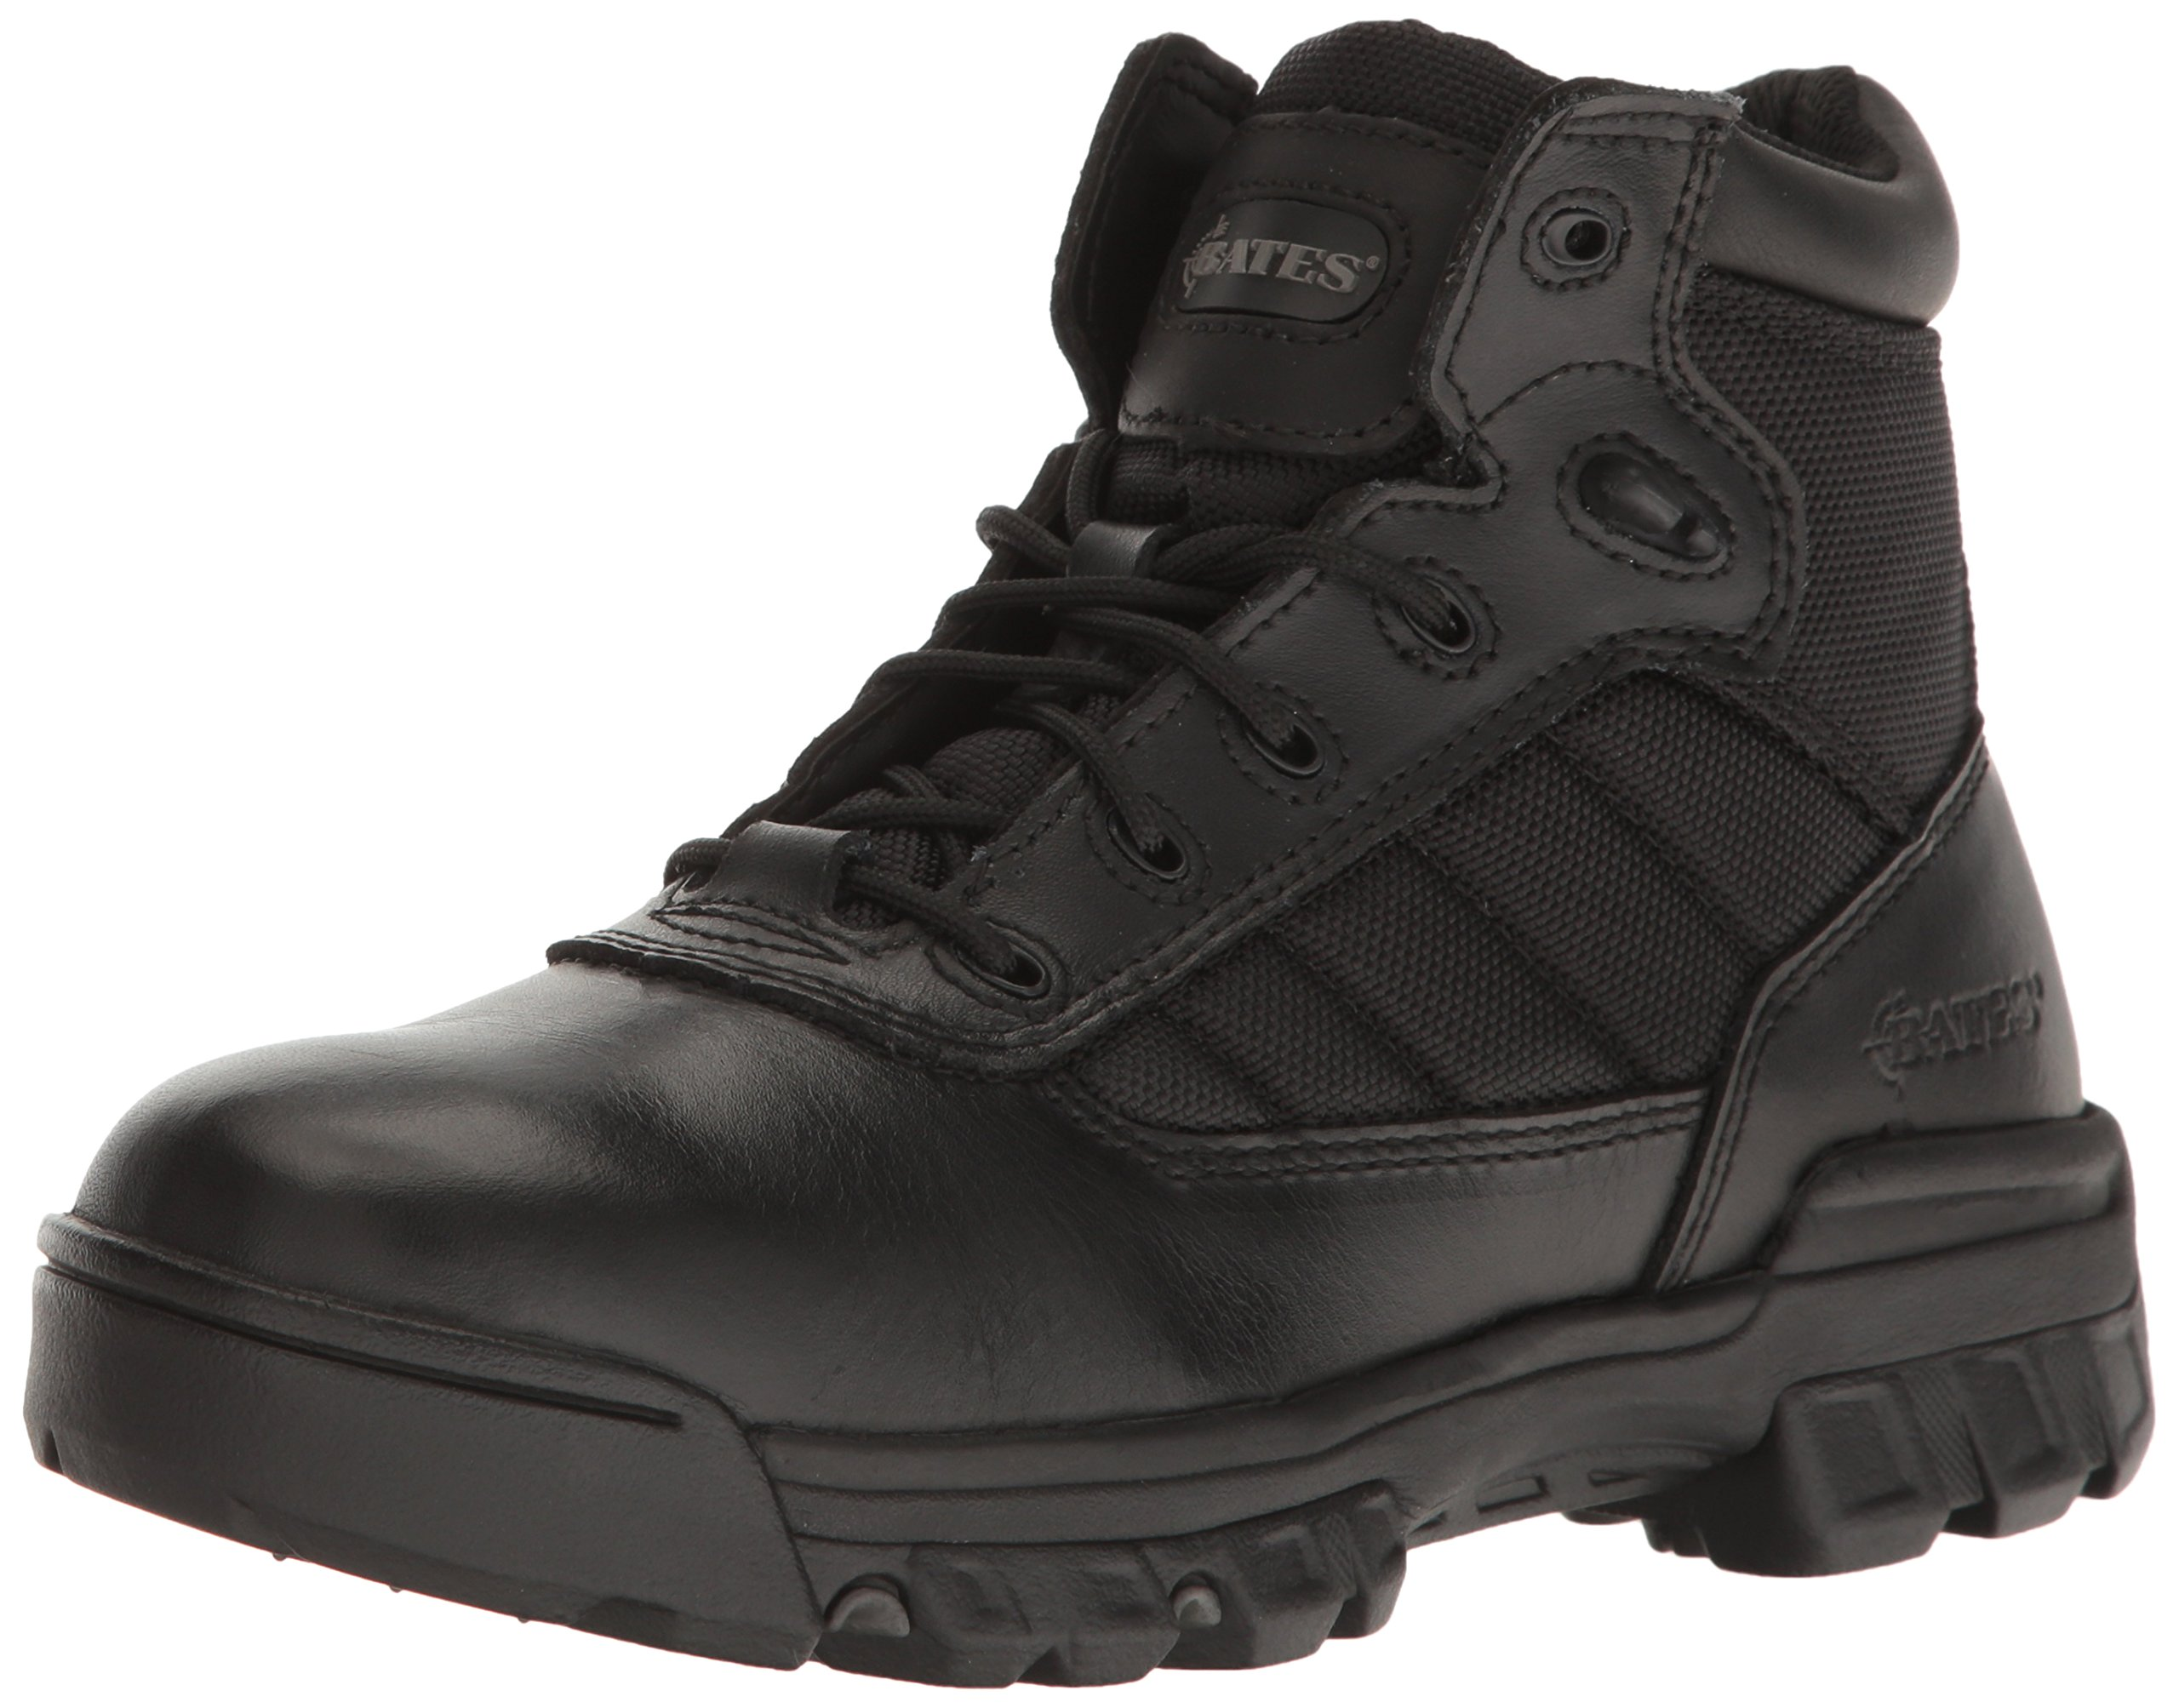 Bates Women's 5 Inches Enforcer Ultralit Sport Boot,Black,8 M US by Bates